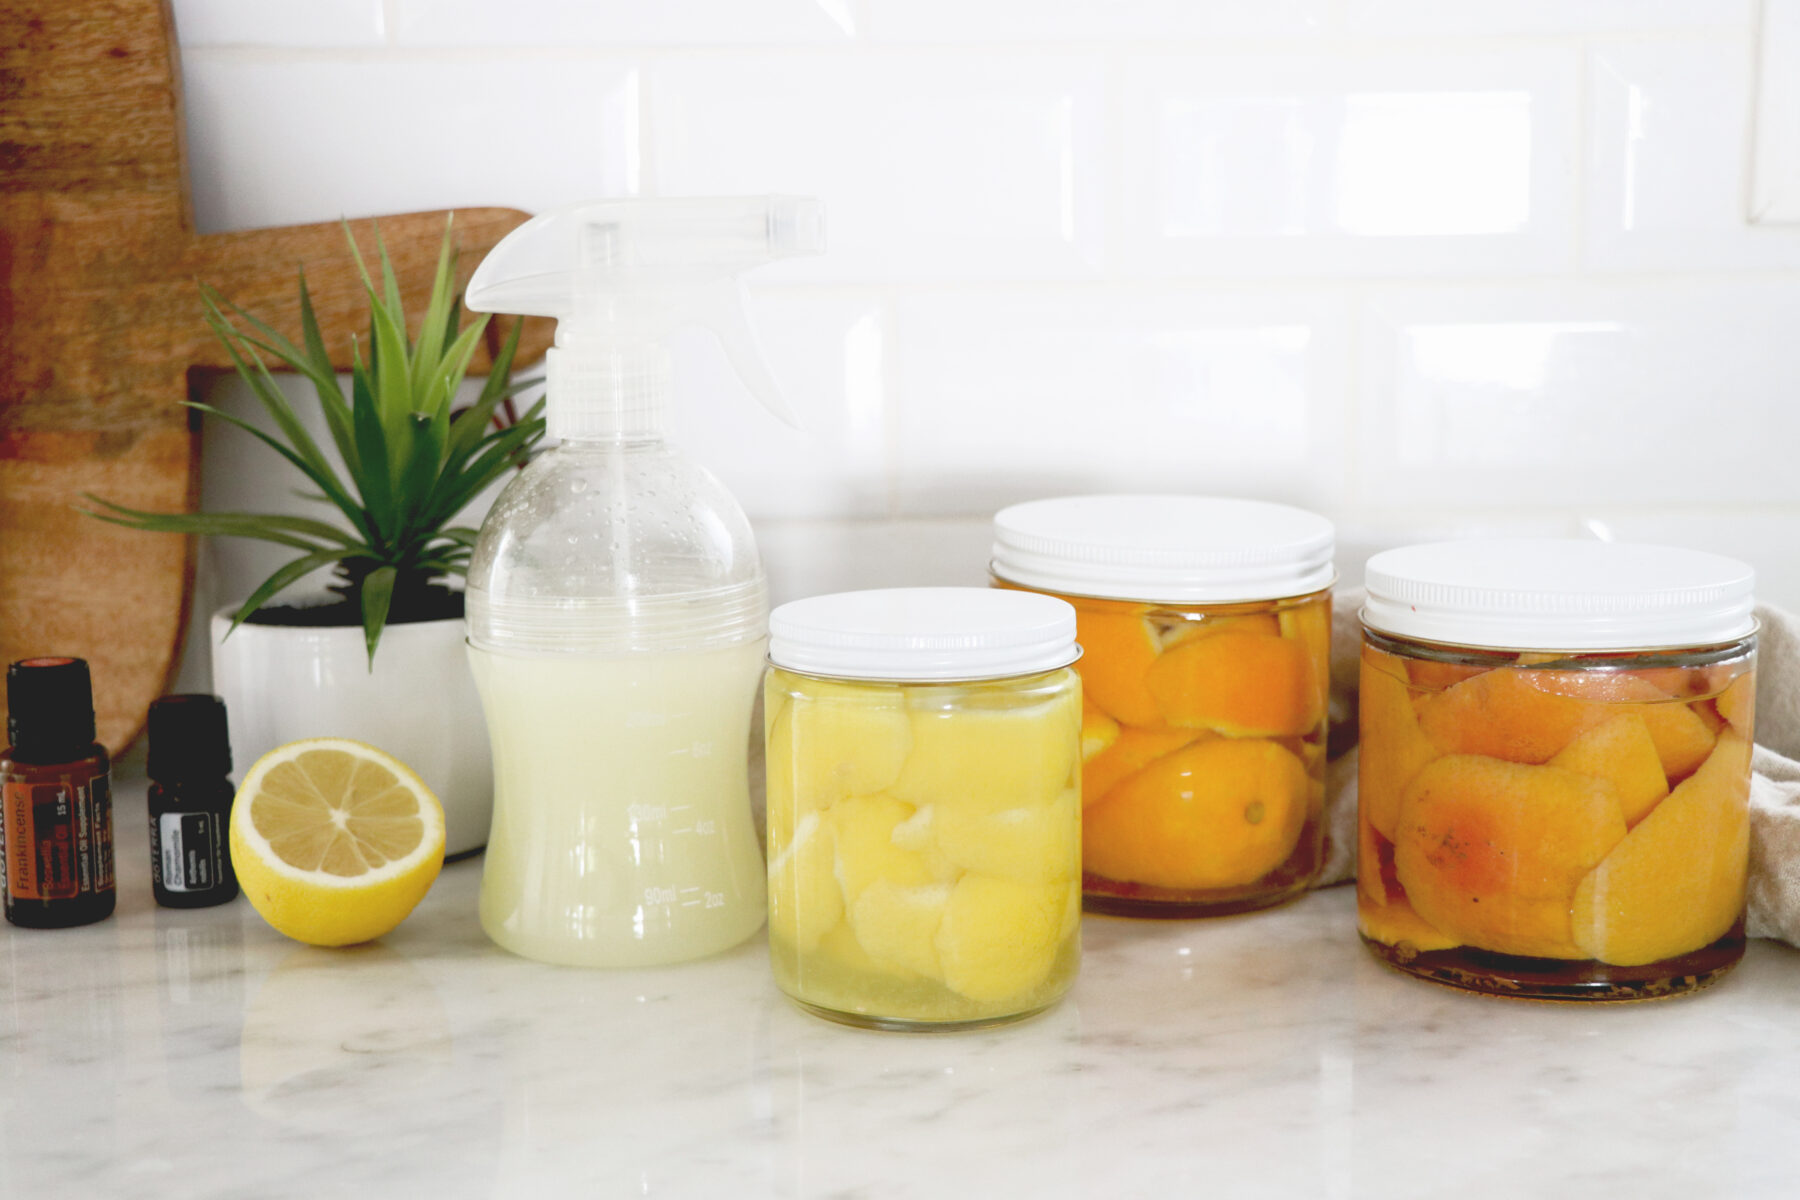 3 clear jars with citrus cleaner and one spray bottle all on countertop.